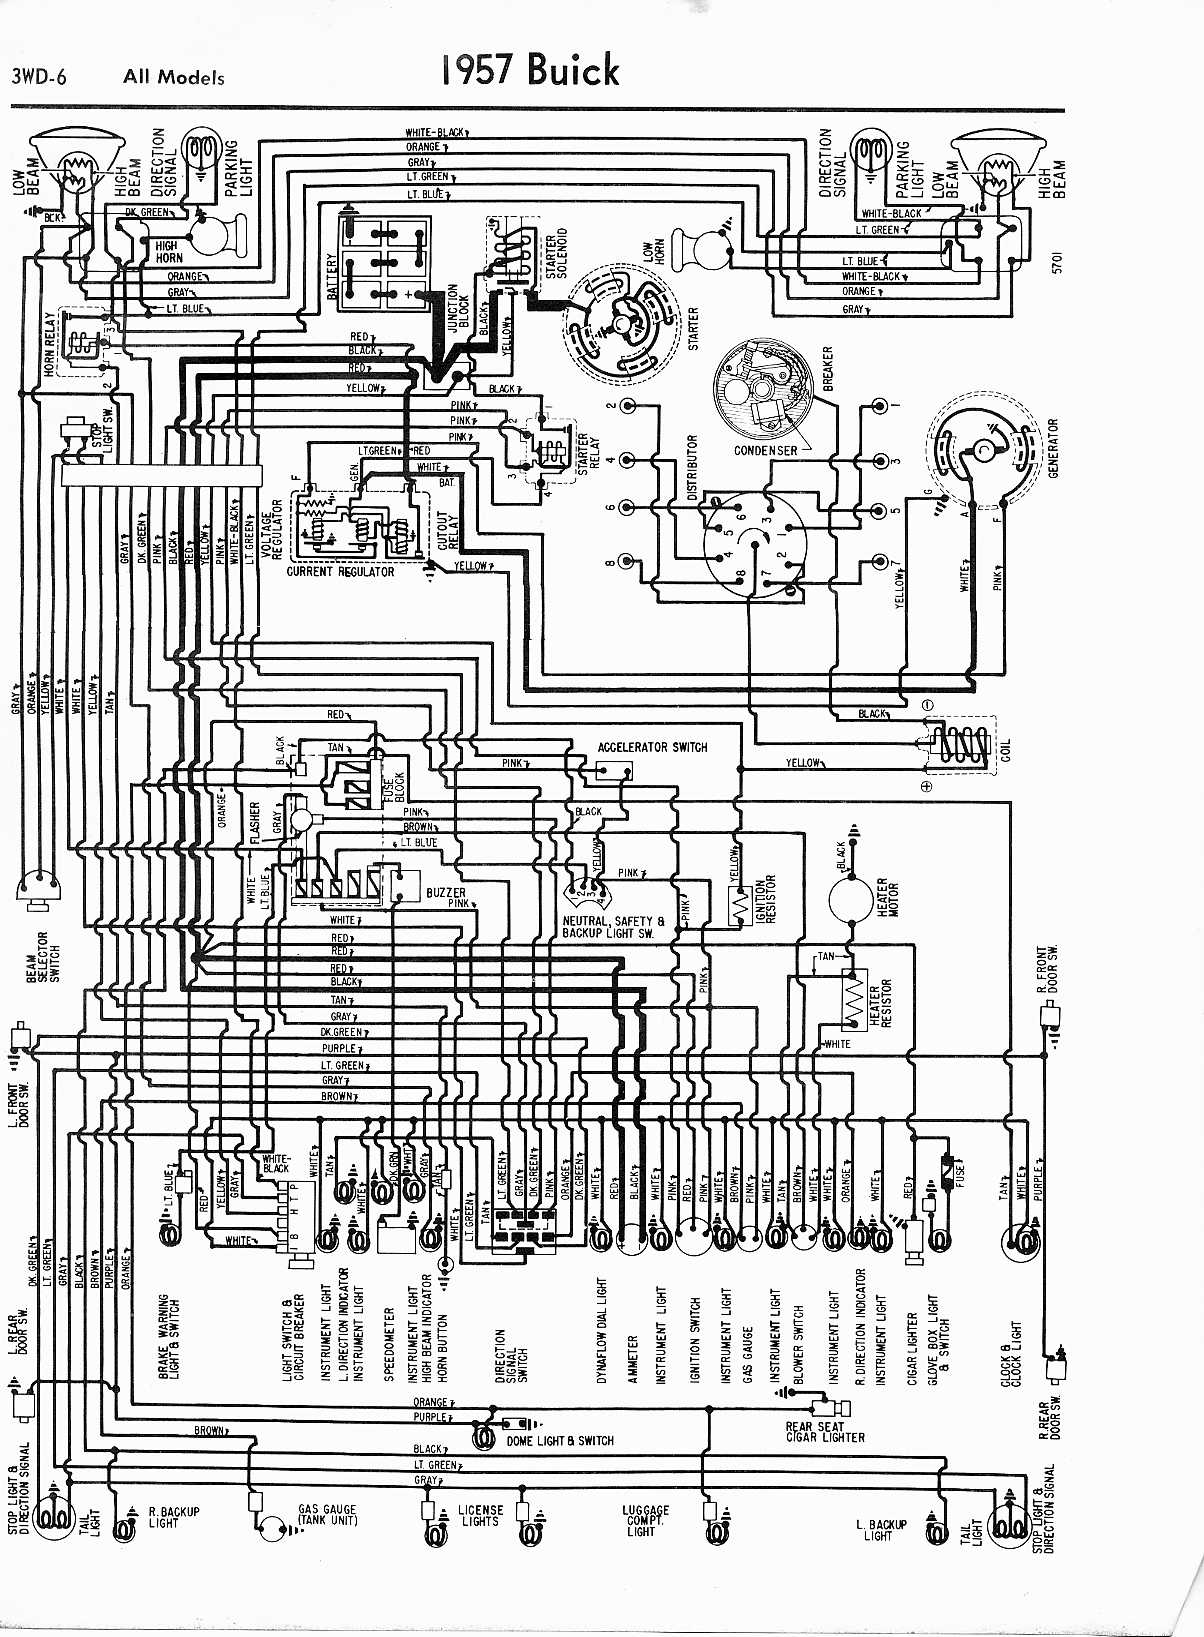 1966 buick riviera wiring diagram simple wiring diagram 1967 ford wiring  diagram 1964 riviera wiring diagram